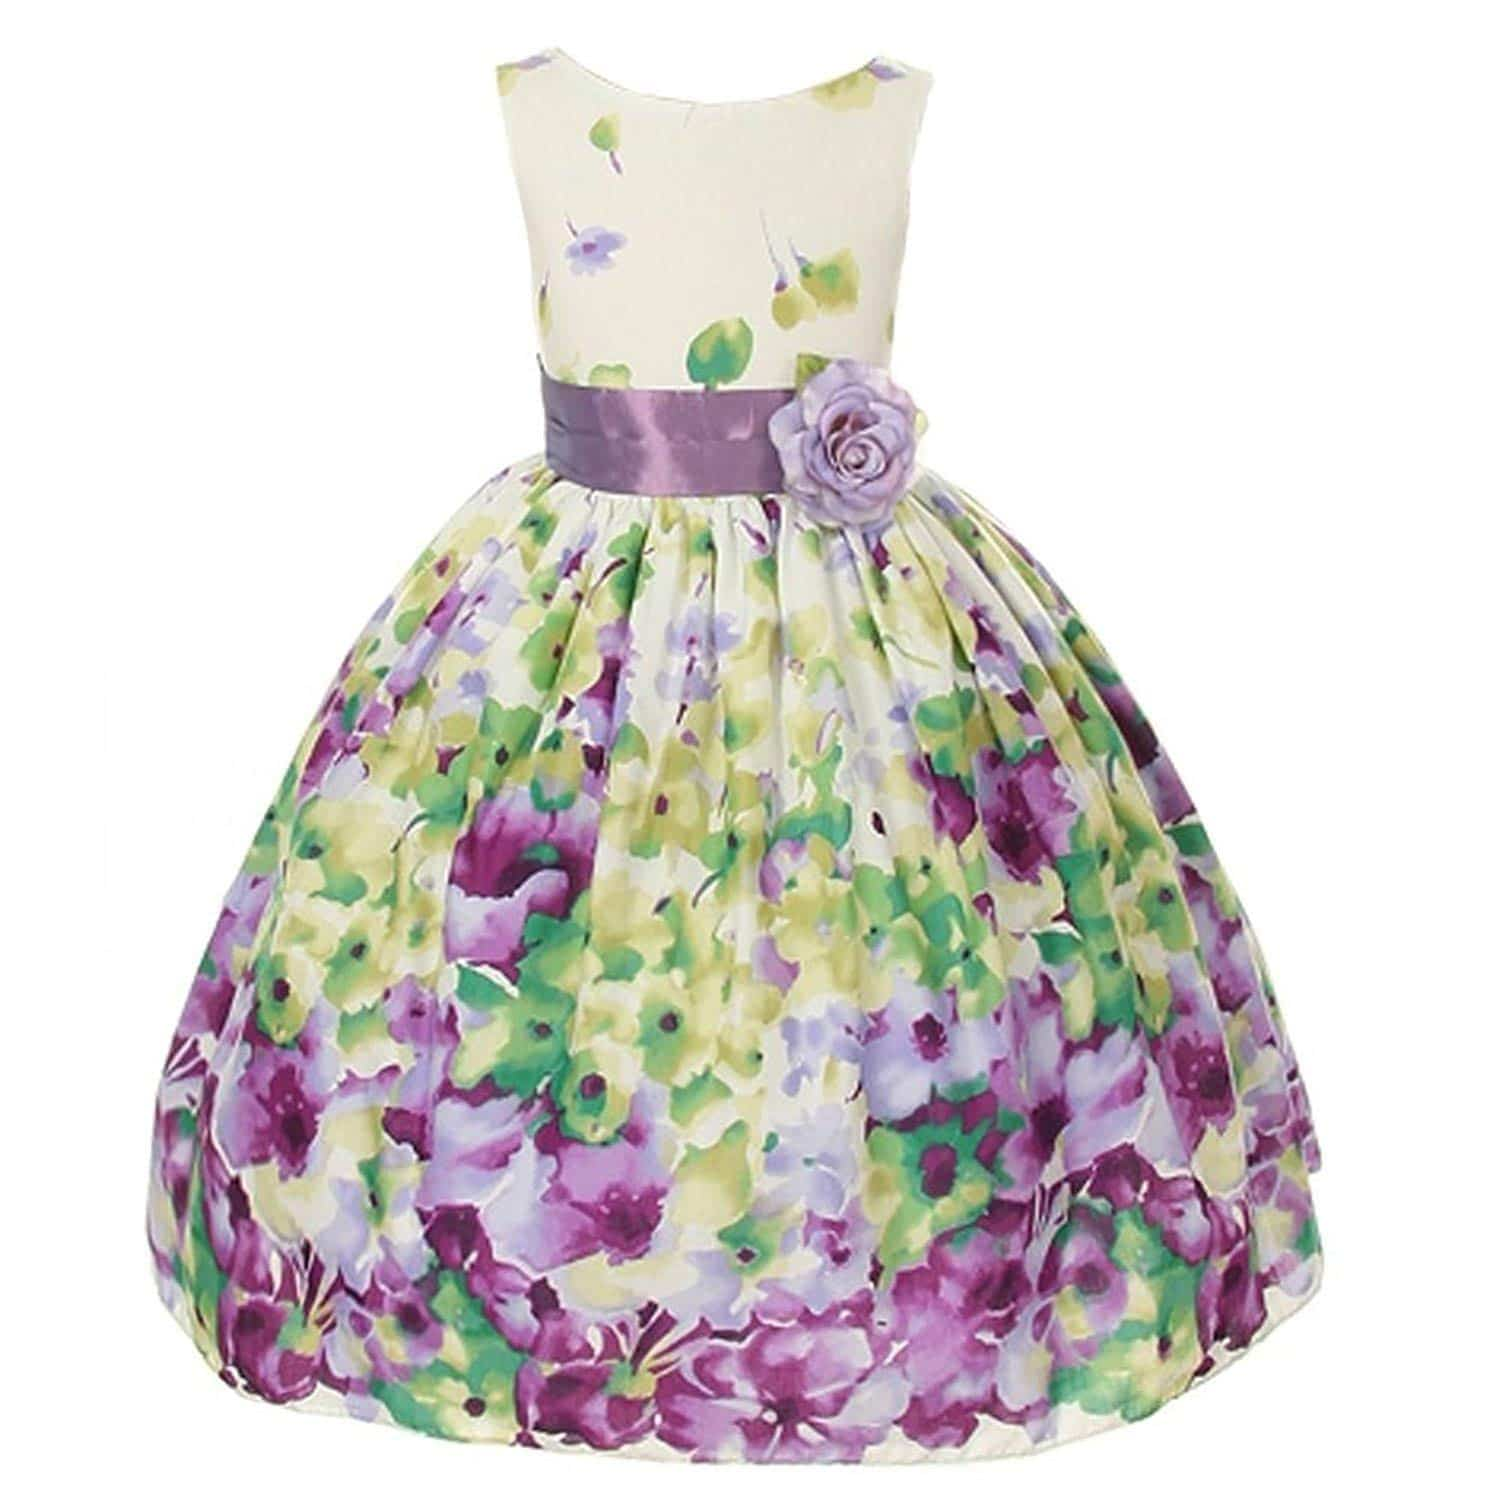 Kid's Dream Lavender Flower Print Sash Easter Dress Little Girls 2T-12